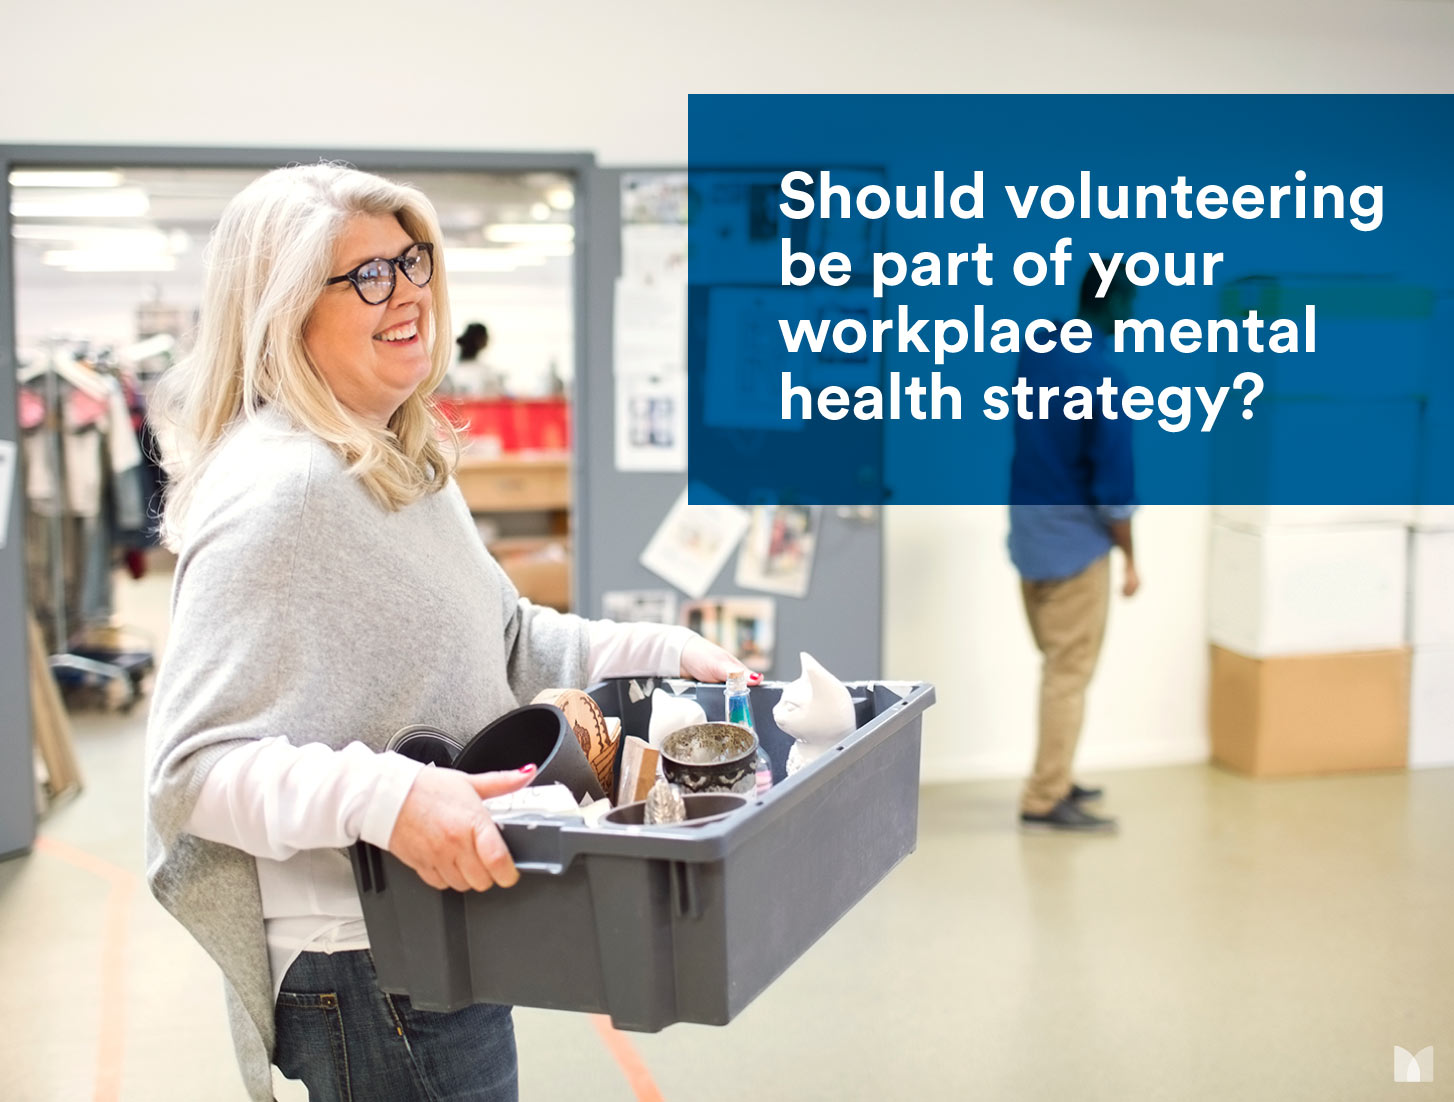 Should volunteering be part of your workplace mental health strategy?